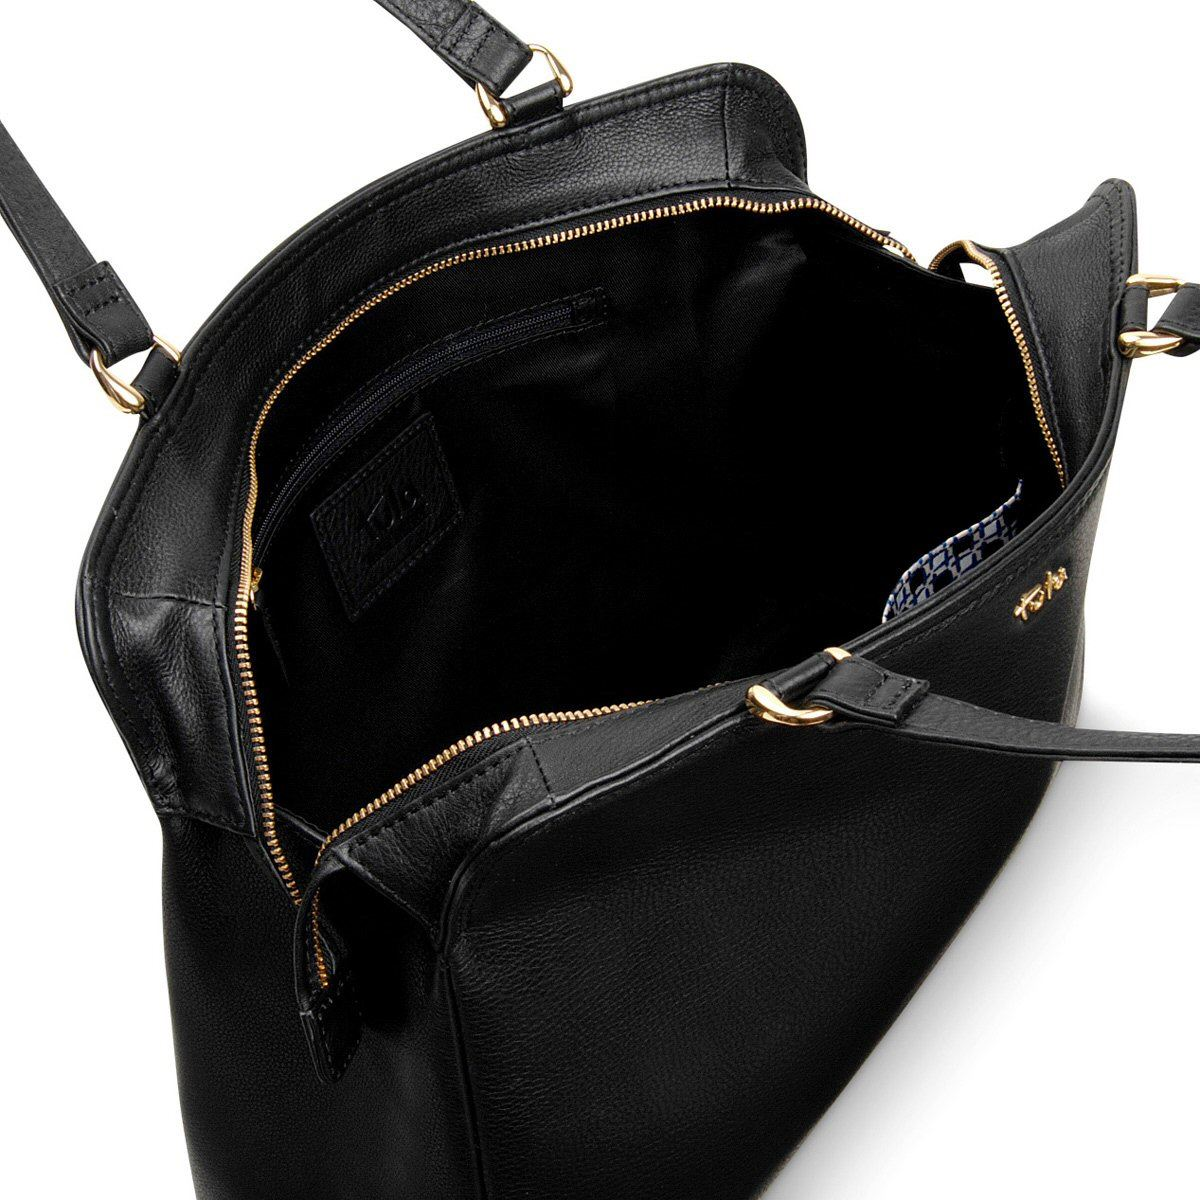 navy Soft Tula Originals Collection Voorraad Shoulder Blackniet Op Bag 8488 Leather BsthQrCdox